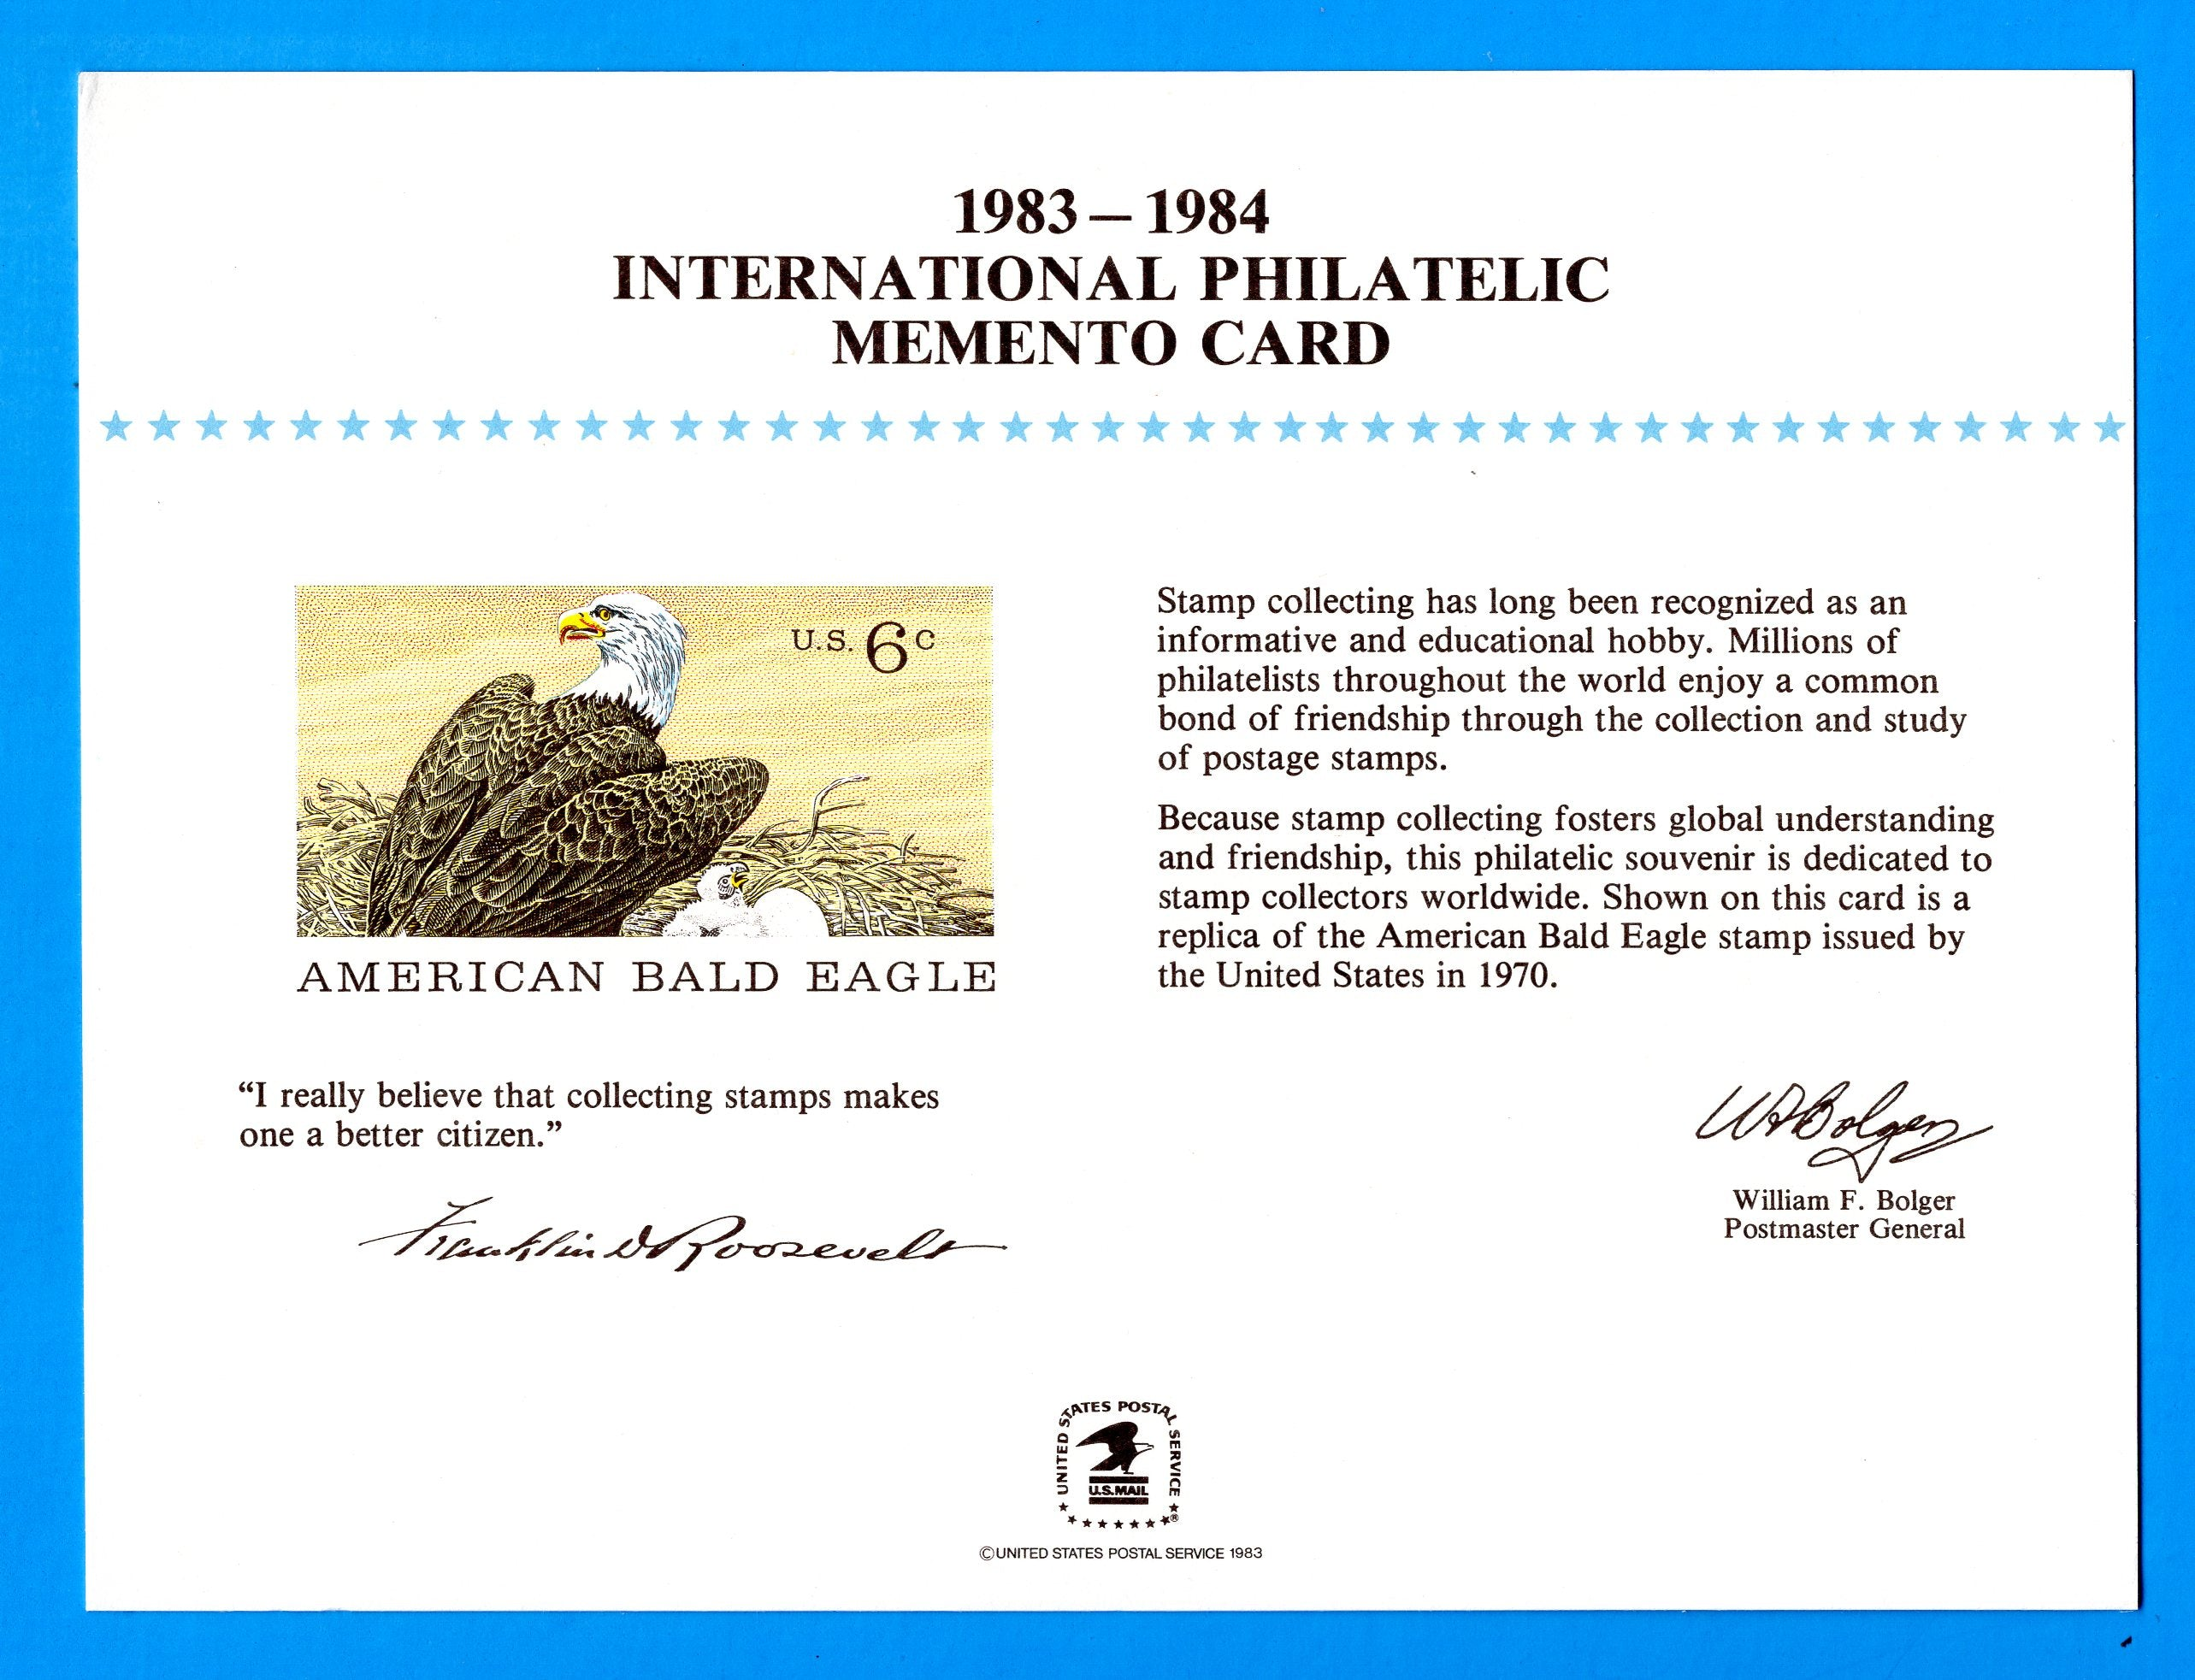 International Philatelic Memento Card 1983-1984 - American Bald Eagle Souvenir Card